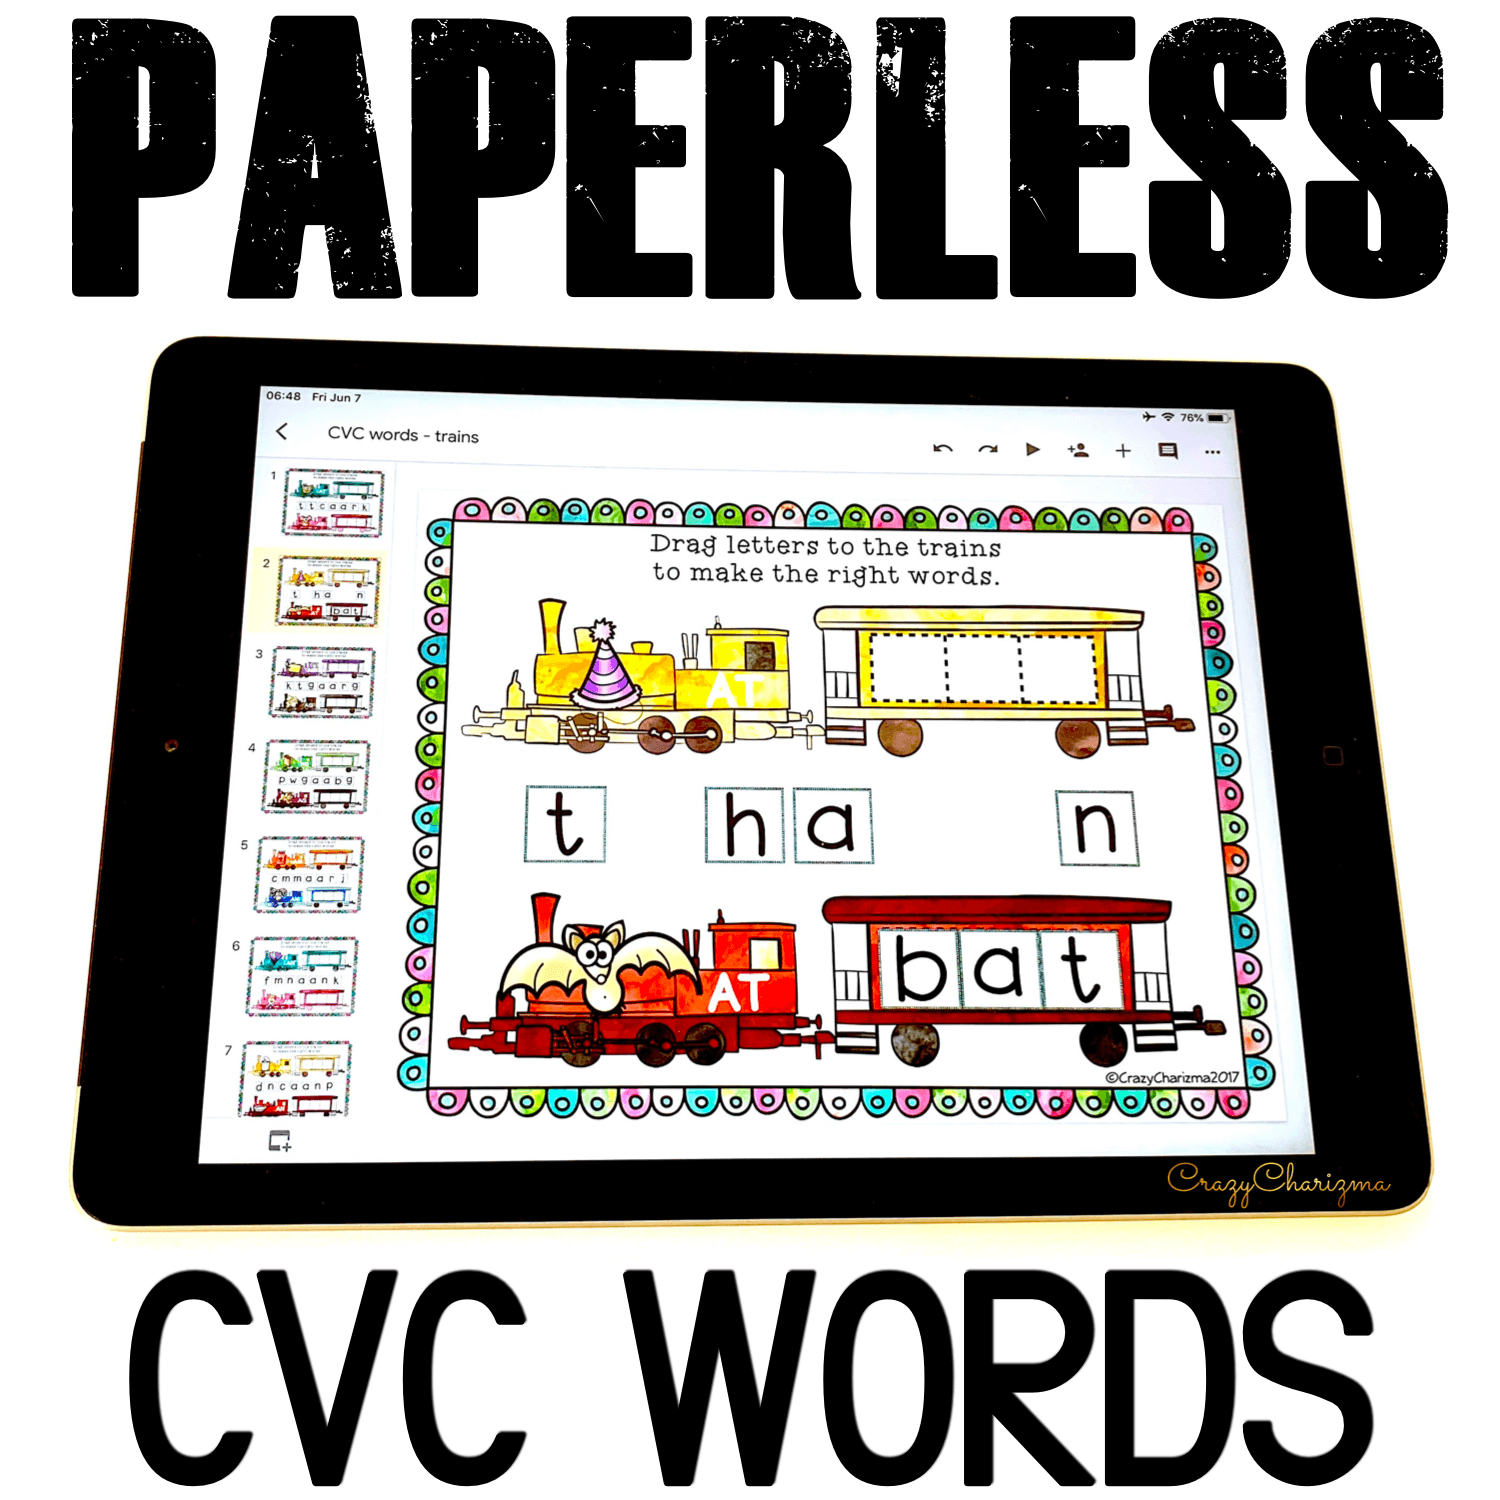 Google Classroom Activities for Kindergarten | CVC Words Games: Grab this digital word work and get kids engaged with fun CVC words practice! Use during guided reading groups, literacy centers, 1:1 work, and for homework.